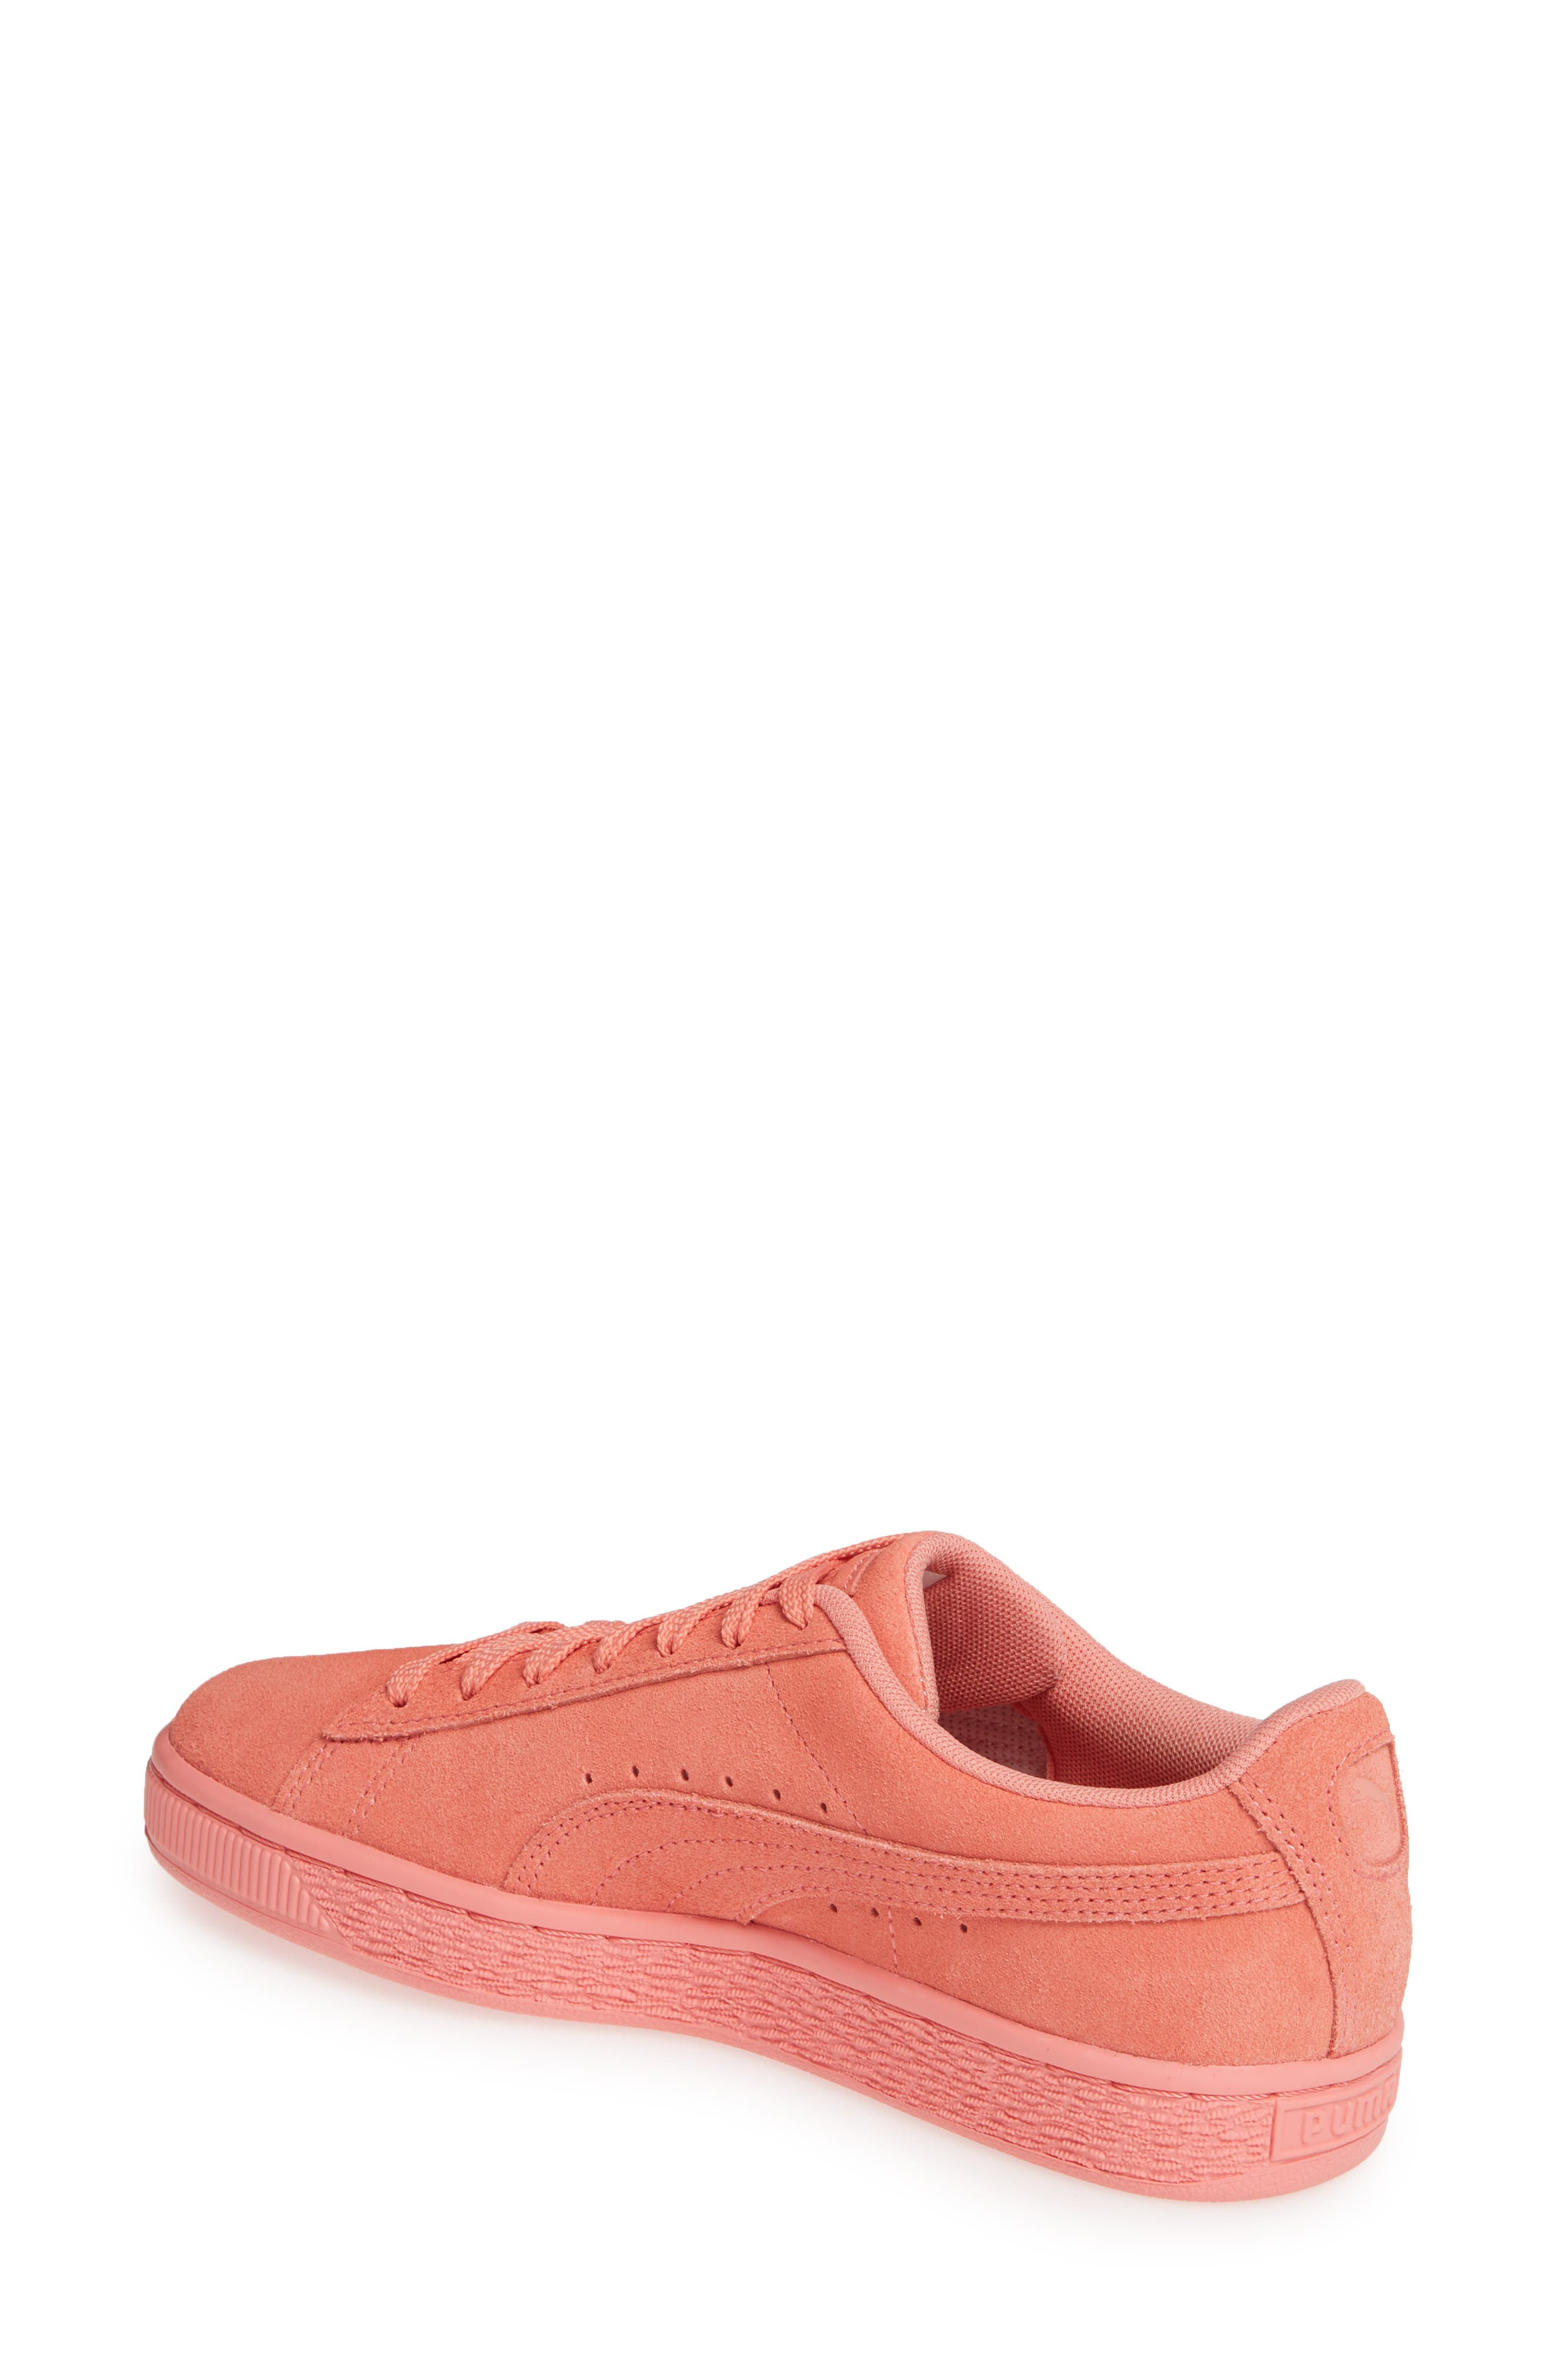 PUMA, Suede TOL Graphic Sneaker, Alternate thumbnail 2, color, SHELL PINK